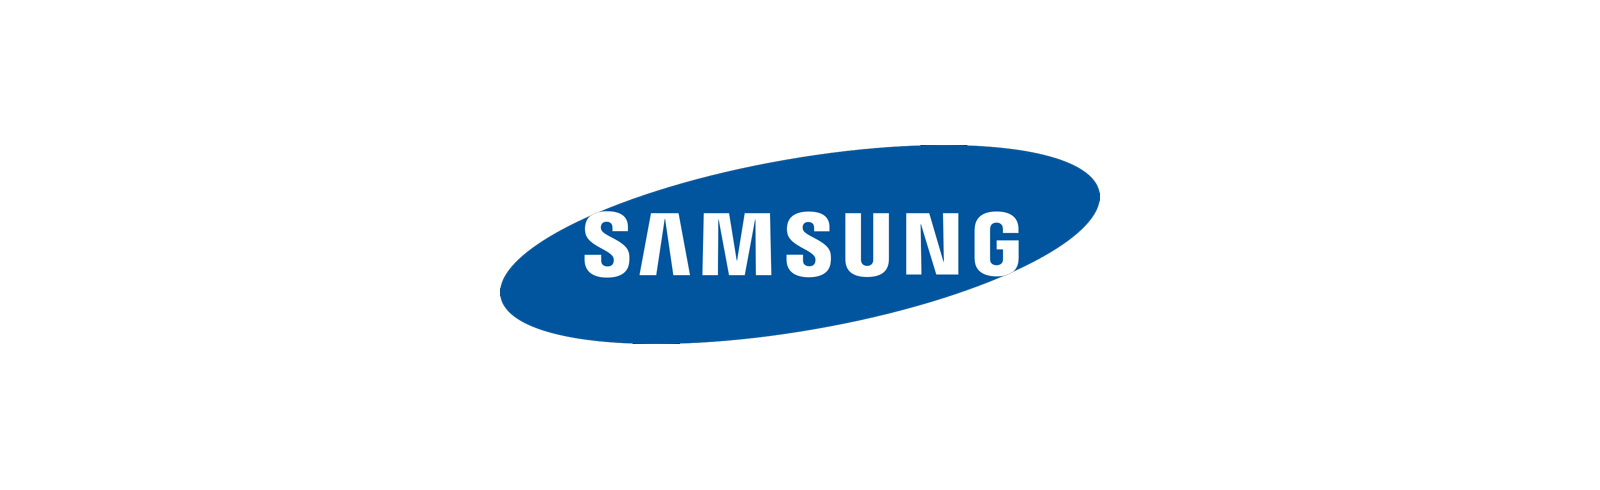 Samsung is preparing for the 6G network of the future